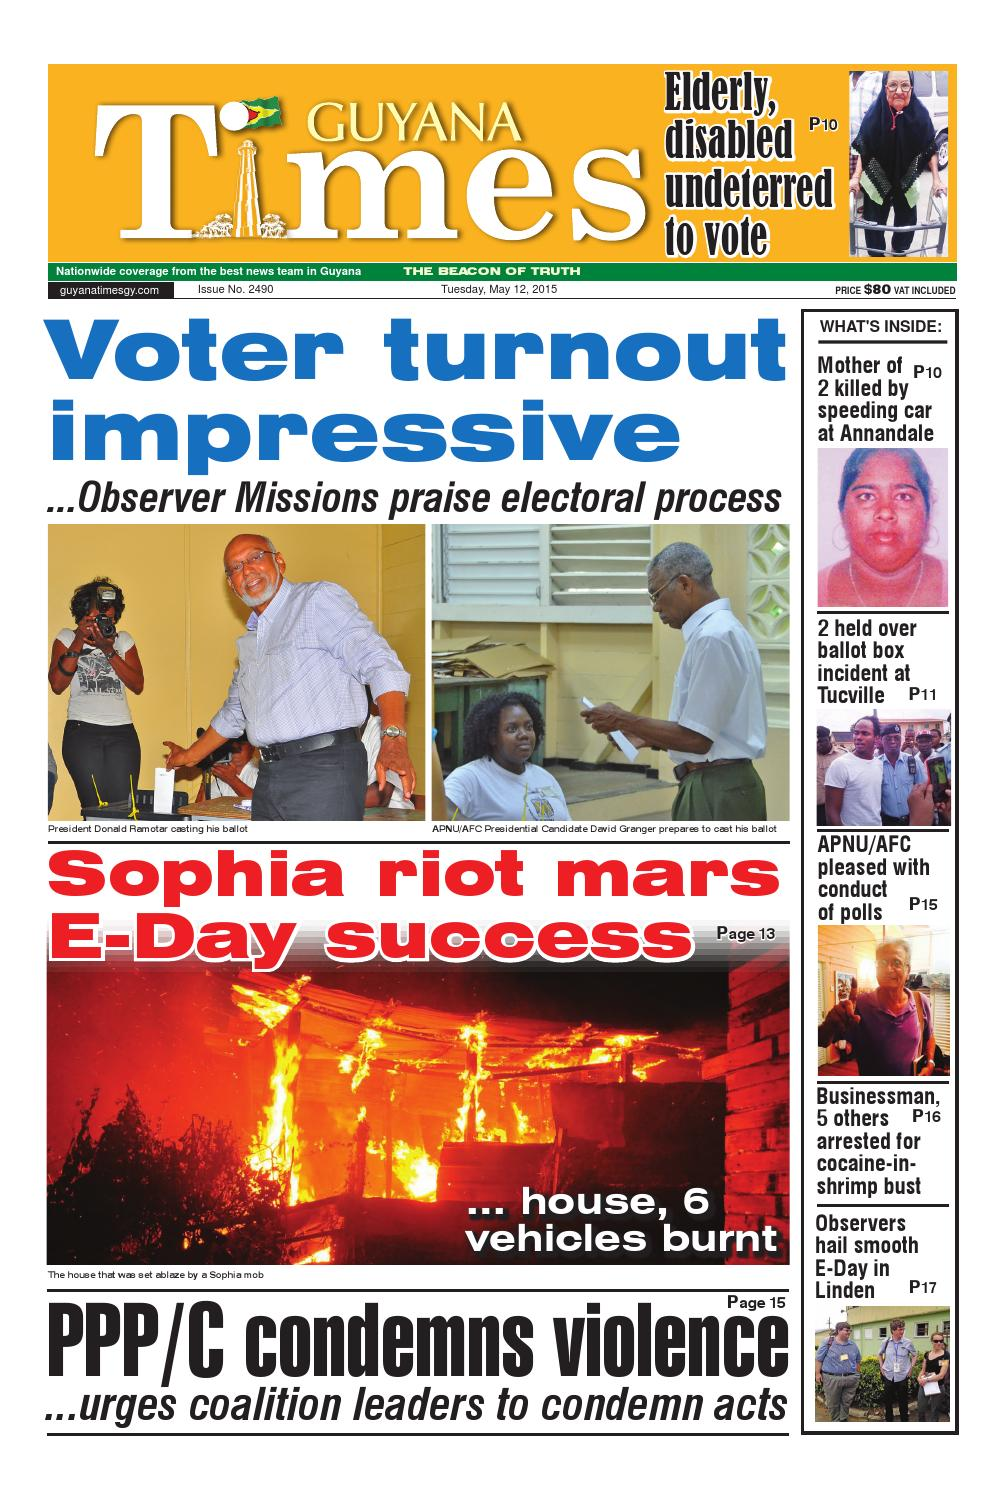 Guyana Times Daily - May 12, 2015 by Gytimes - issuu